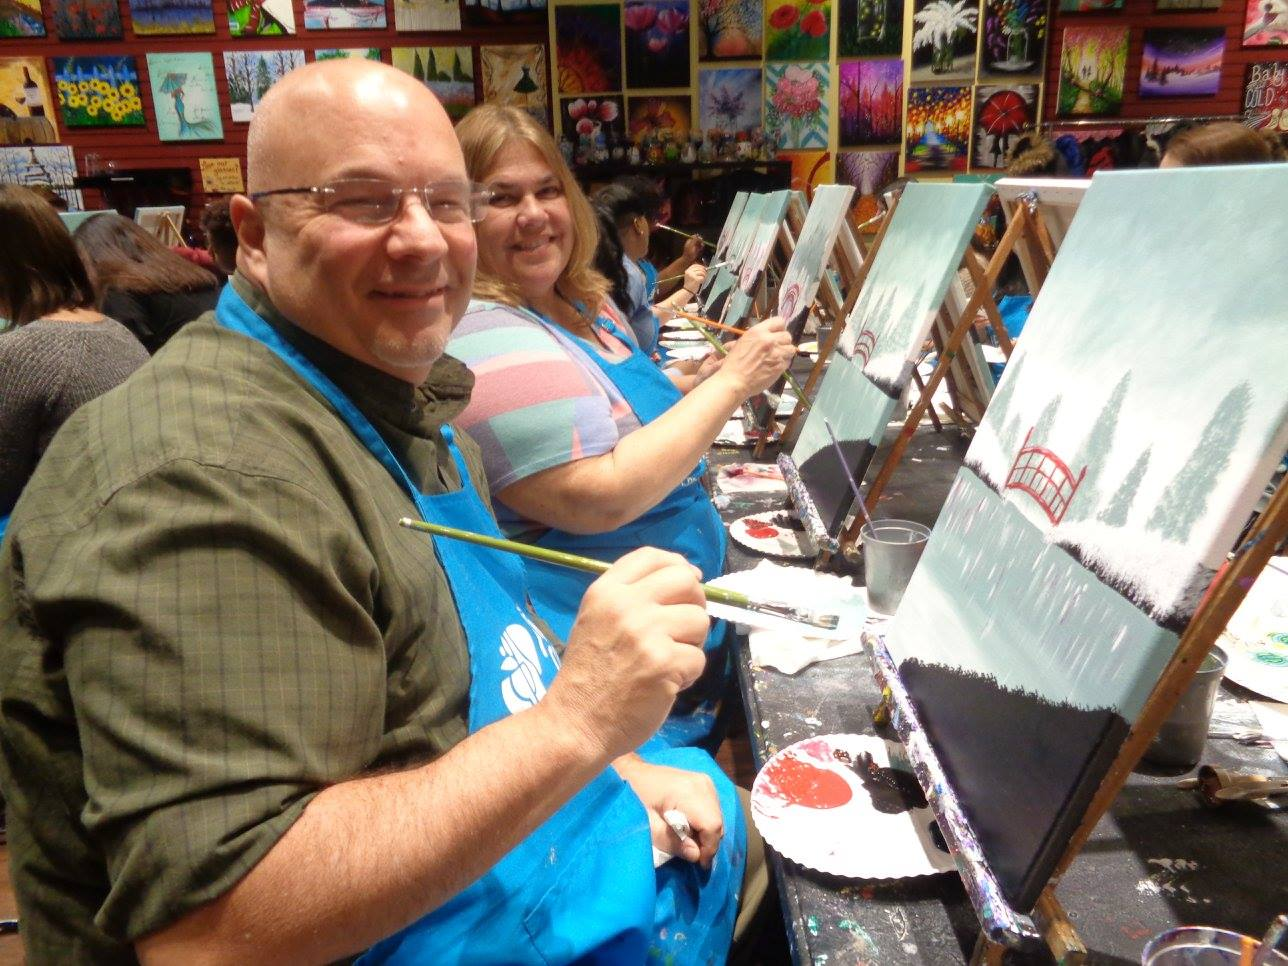 paint and sip Westwood NJ couples night